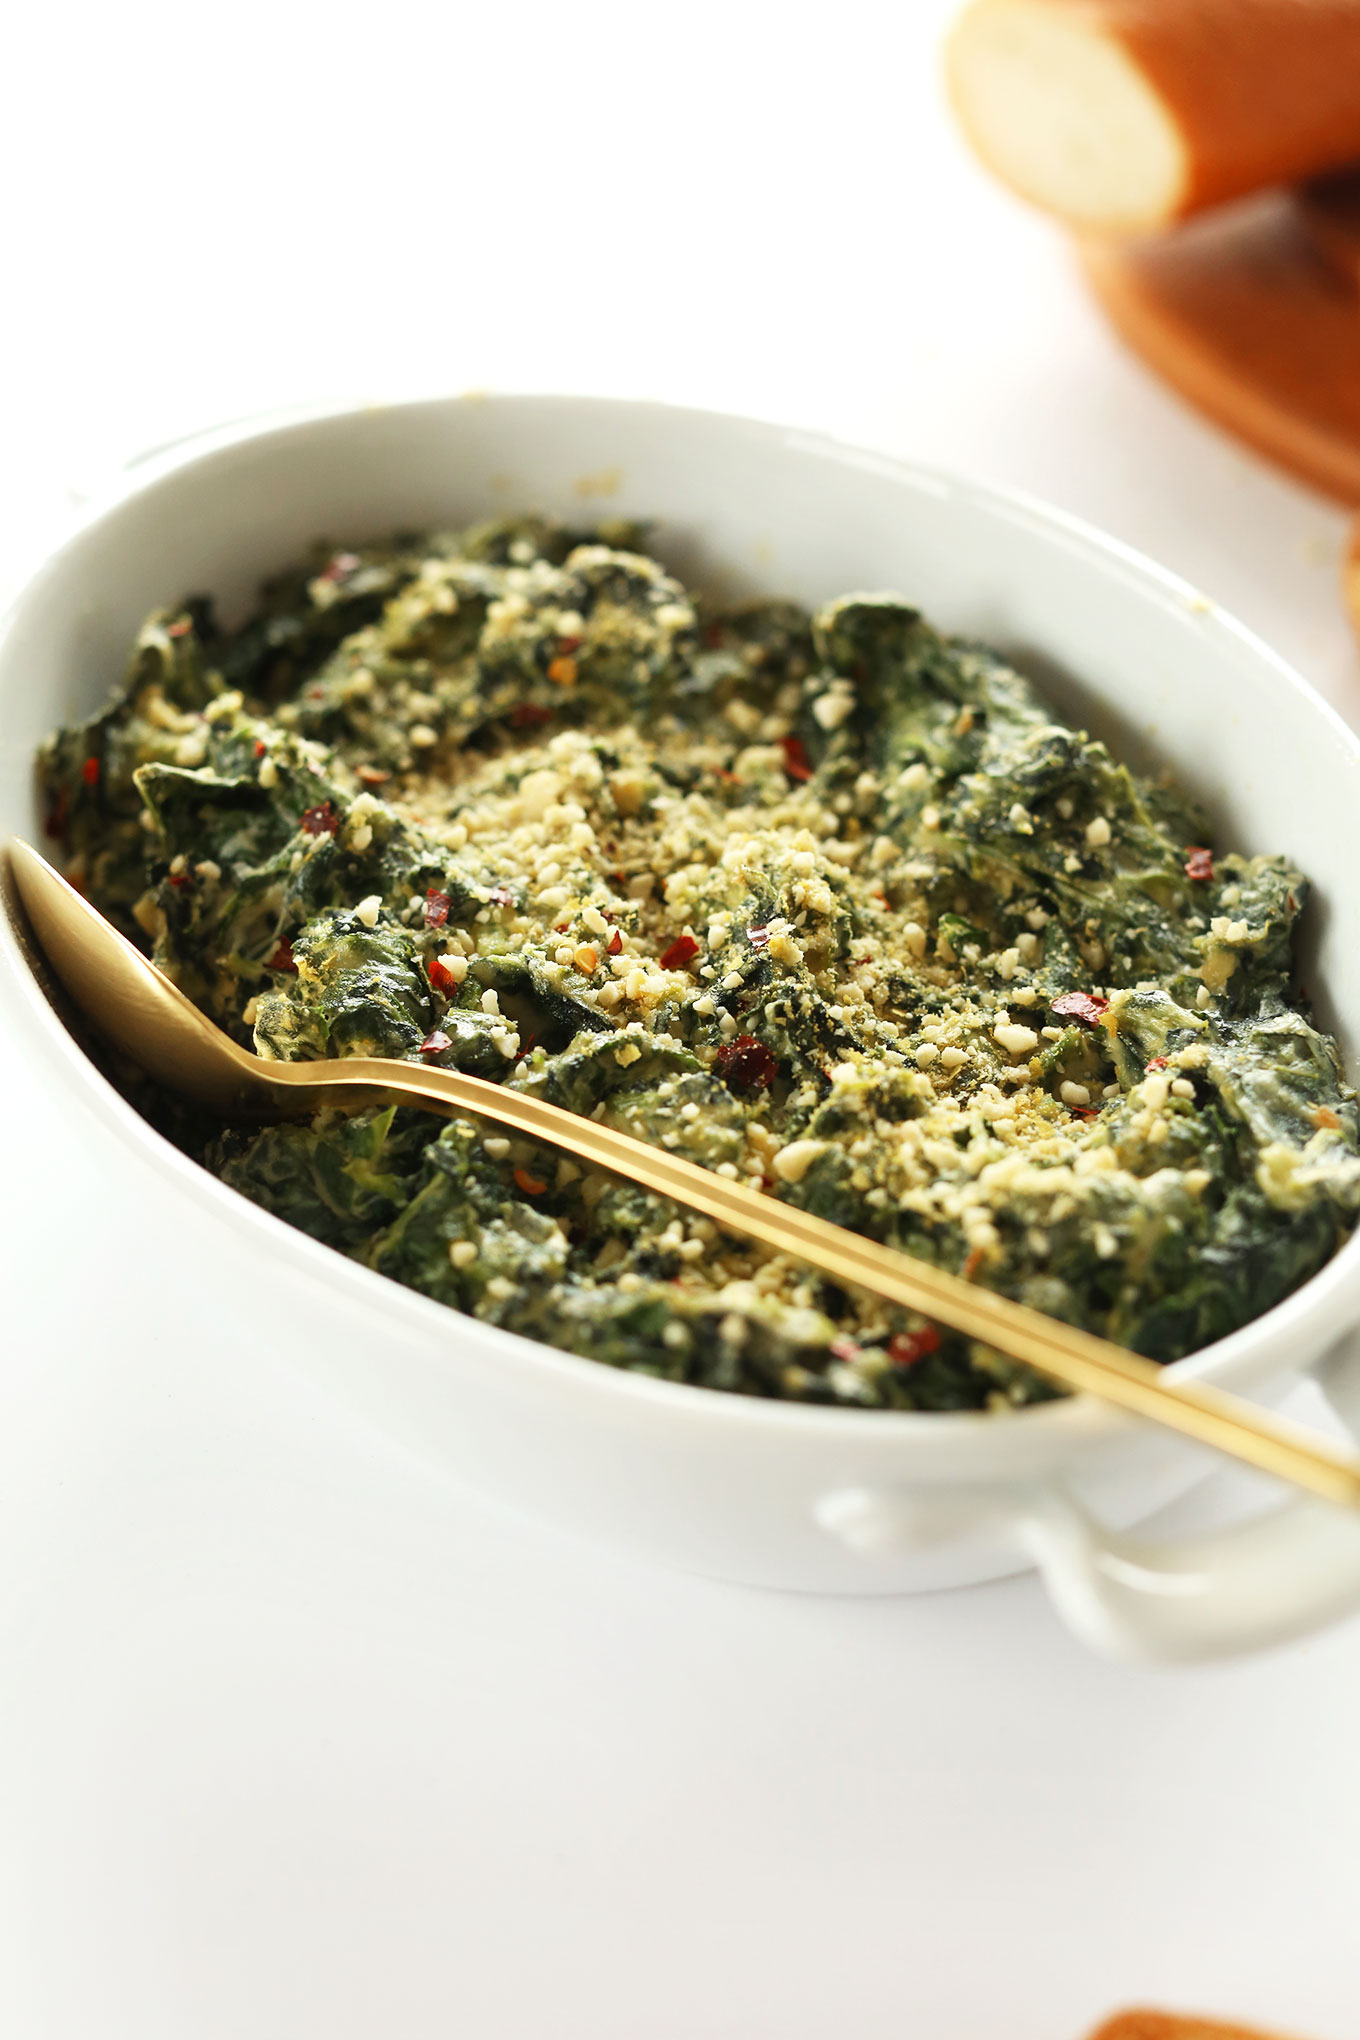 Dish of the perfect healthy appetizer of Kale and Spinach Dip